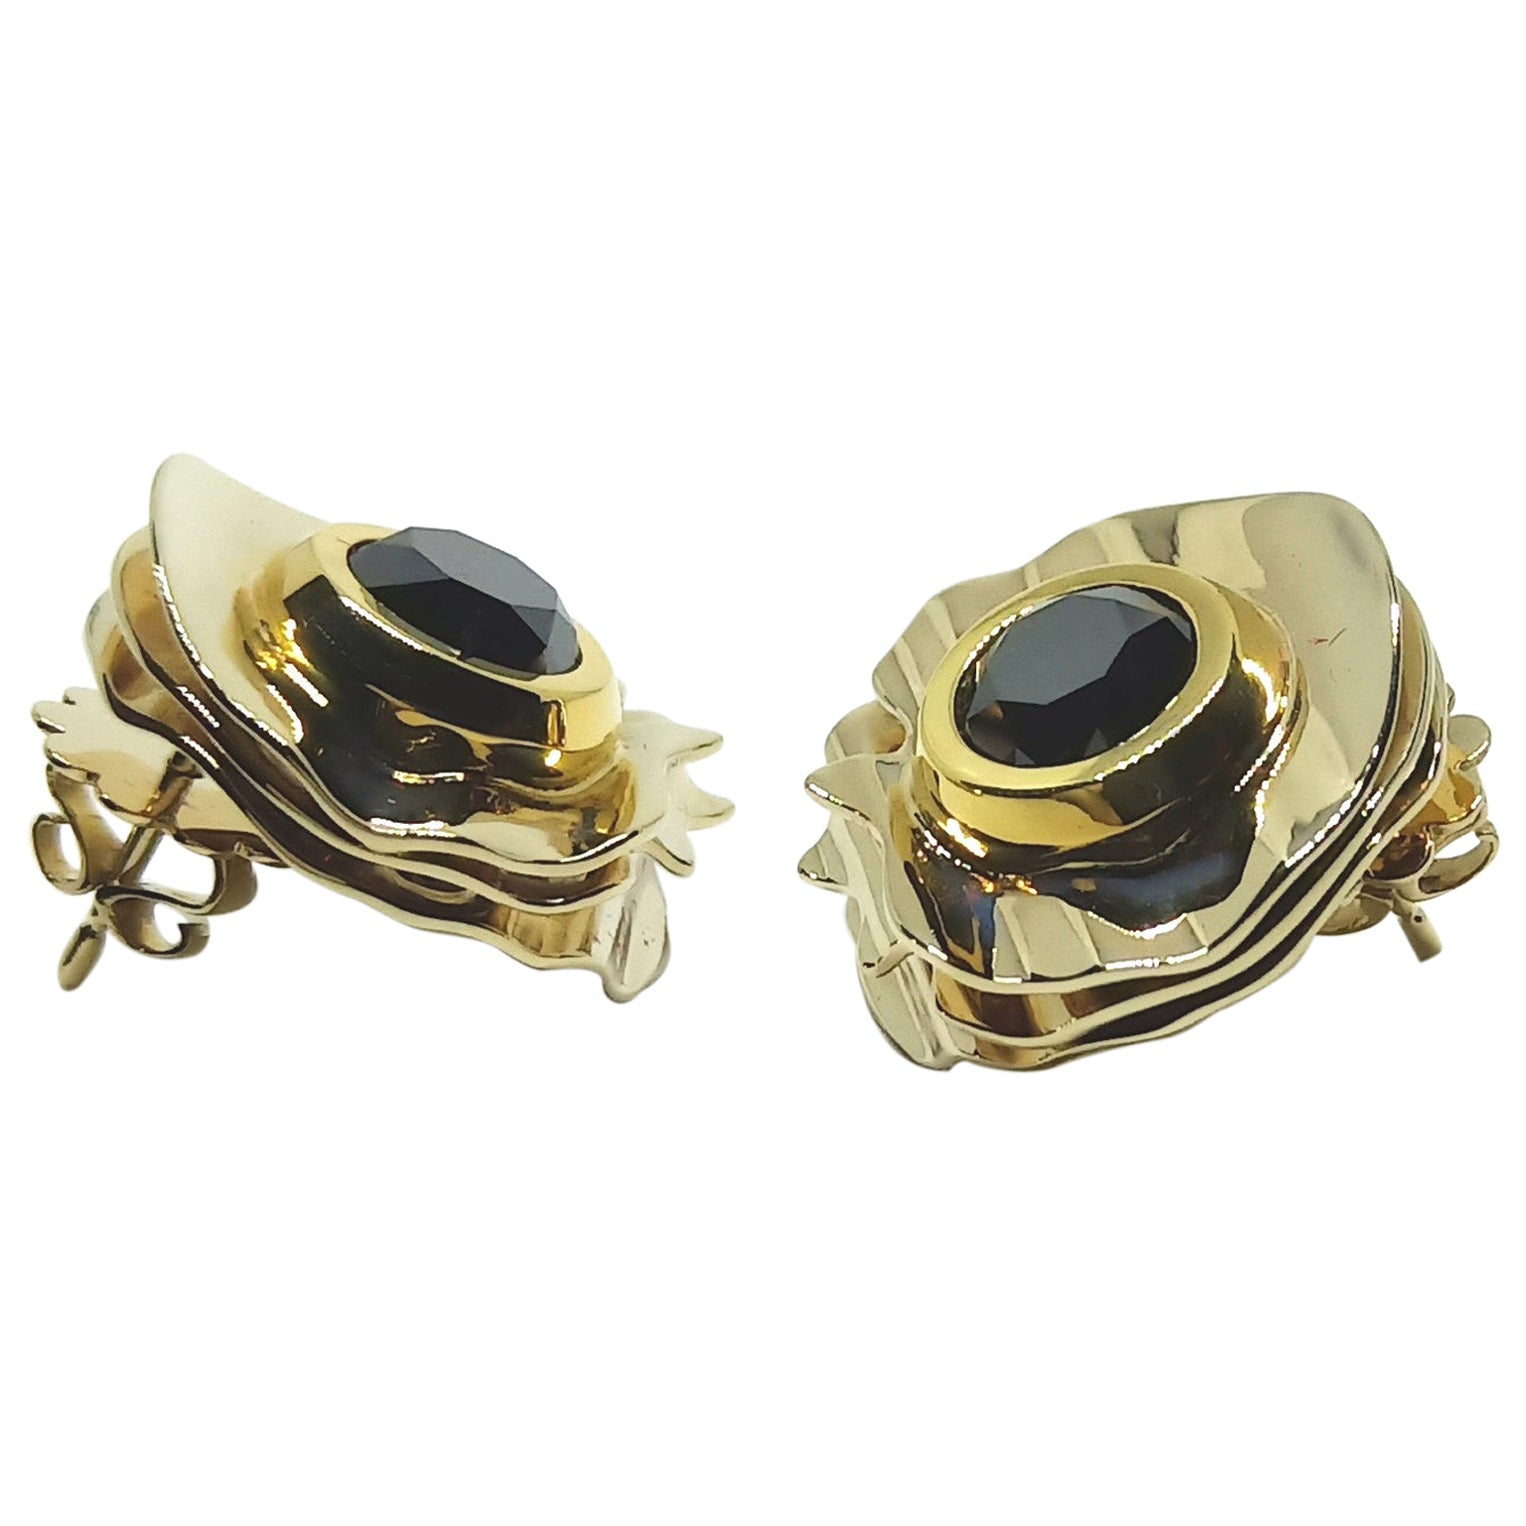 Envious Eyes will Roll with Contemporary One of a Kind Black Diamond Earrings